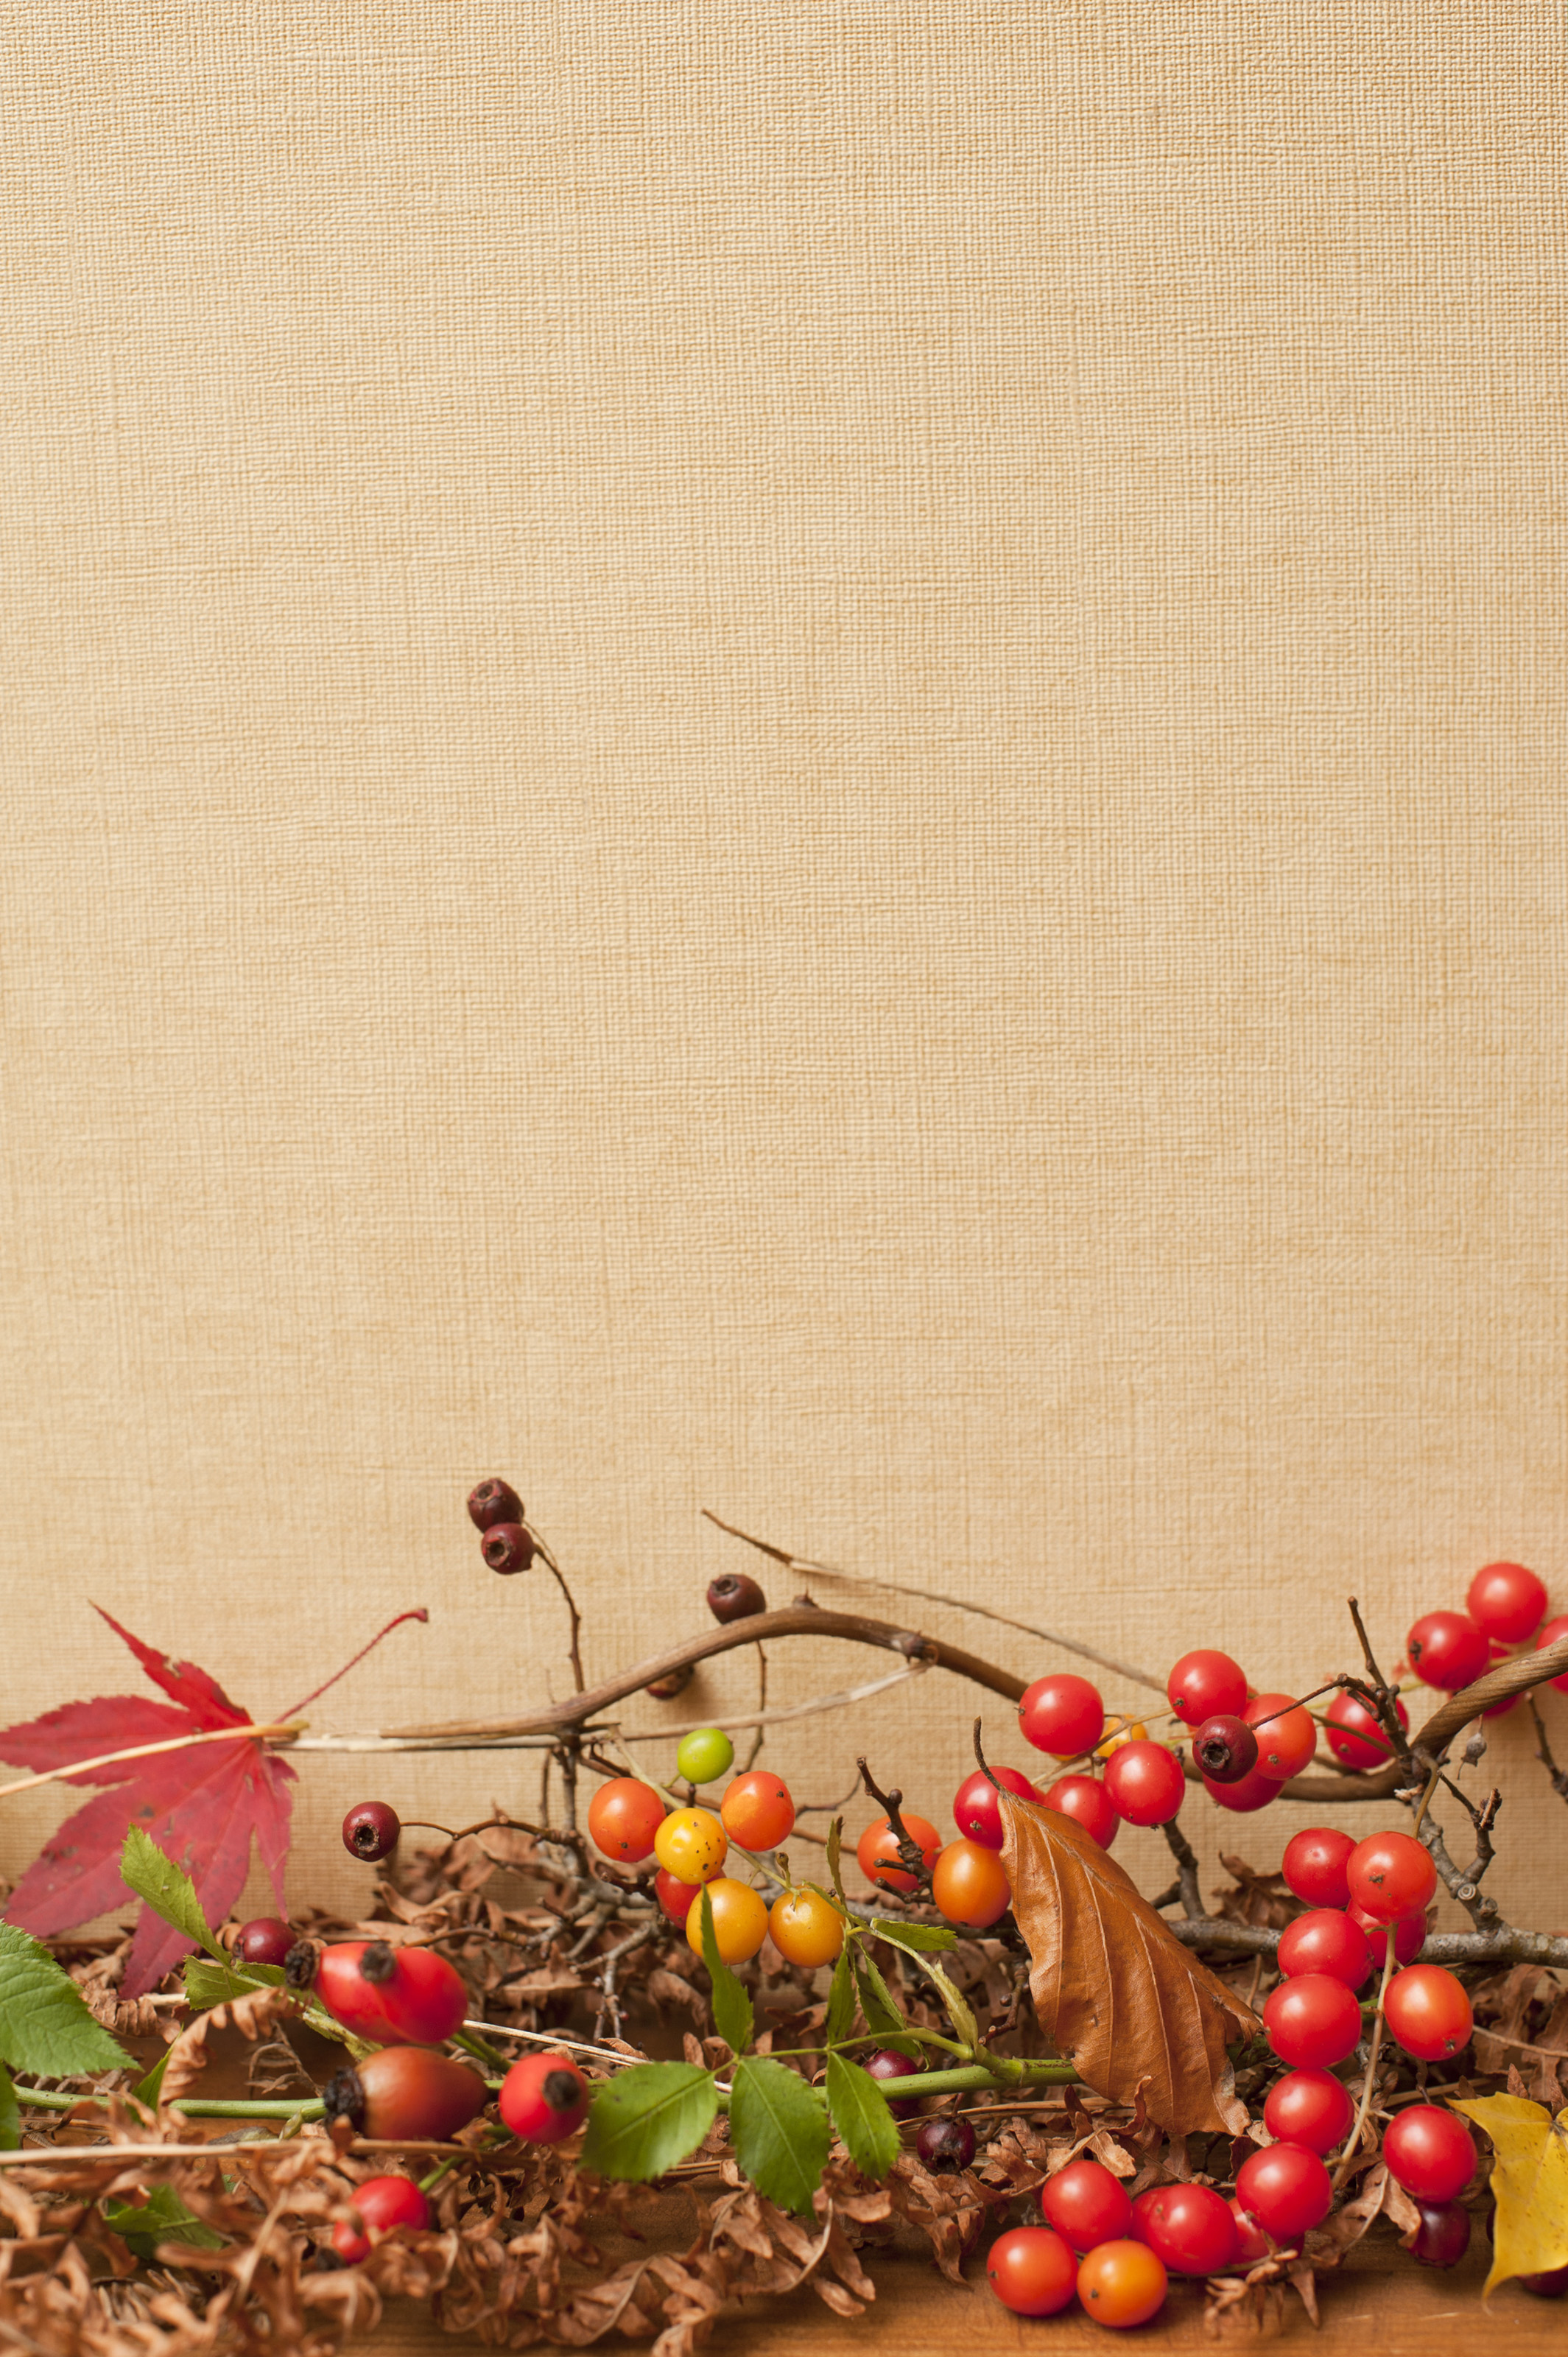 Autumn background with textured copyspace in vertical format with colorful fall leaves and berries in red and yellow